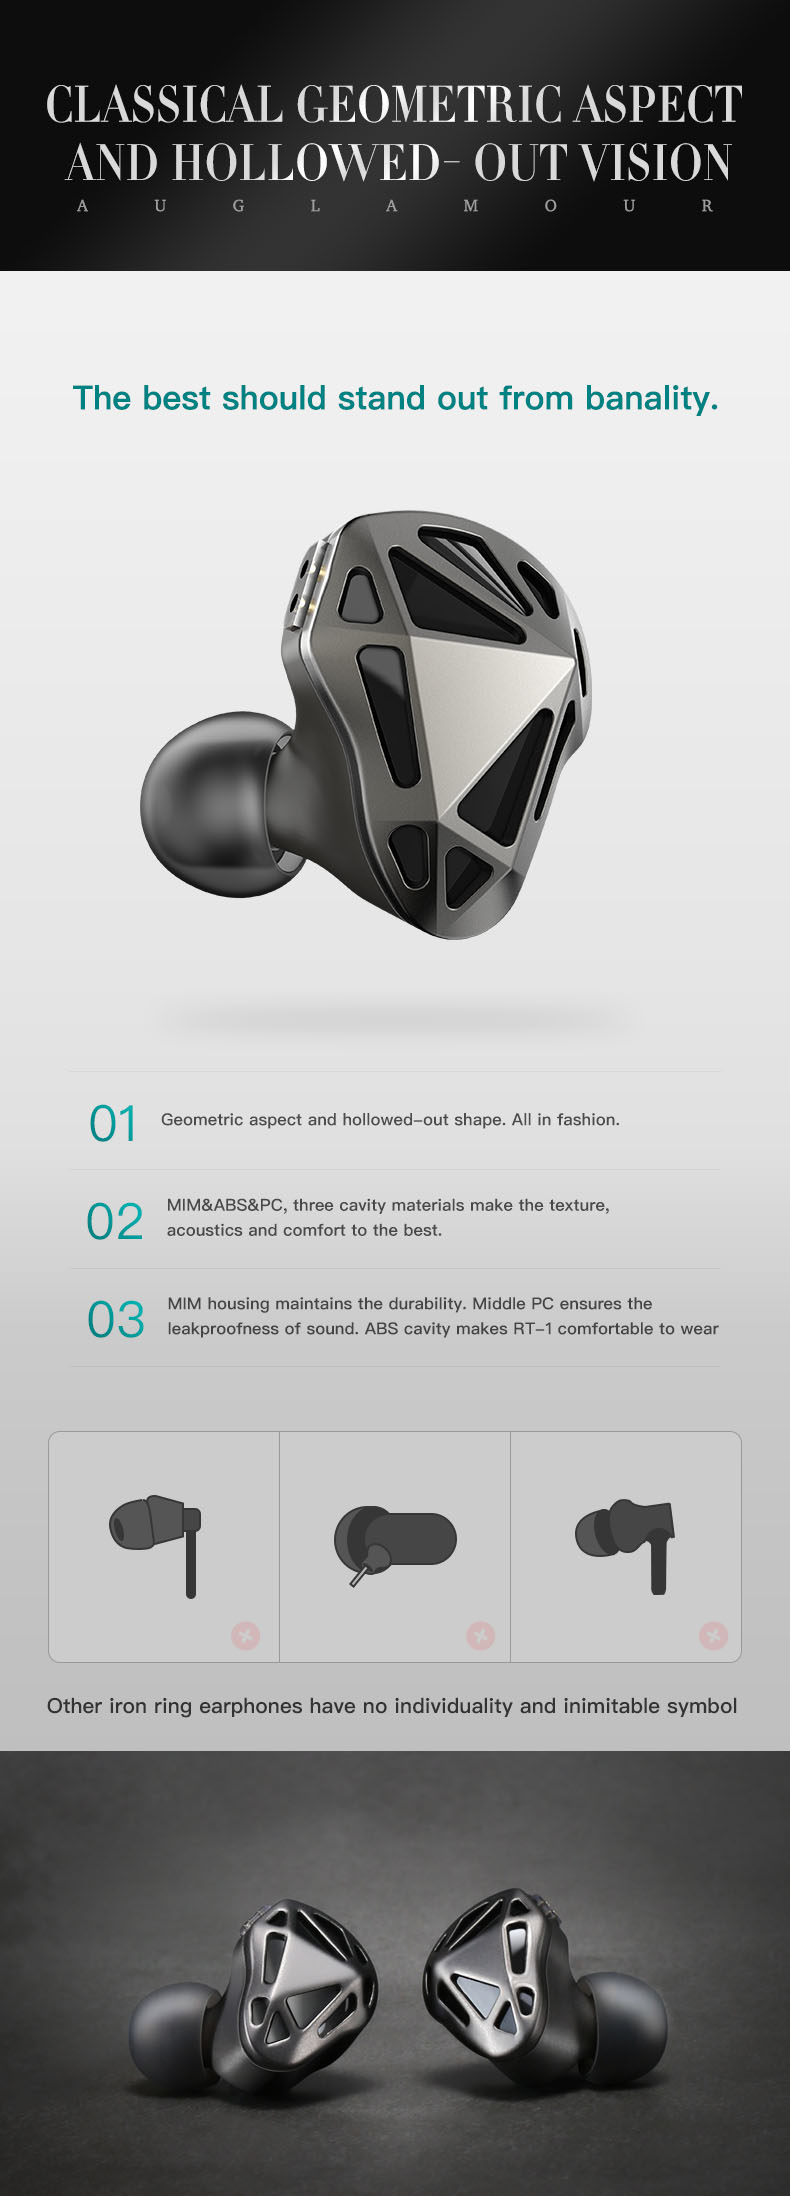 AUGLAMOUR RT1 In Ear HIFI Earphone Bluetooth Ear Hook Metal Earbud DIY Earplugs Dynamic Stereo Music MMXC 2-Pin Detachable Cable